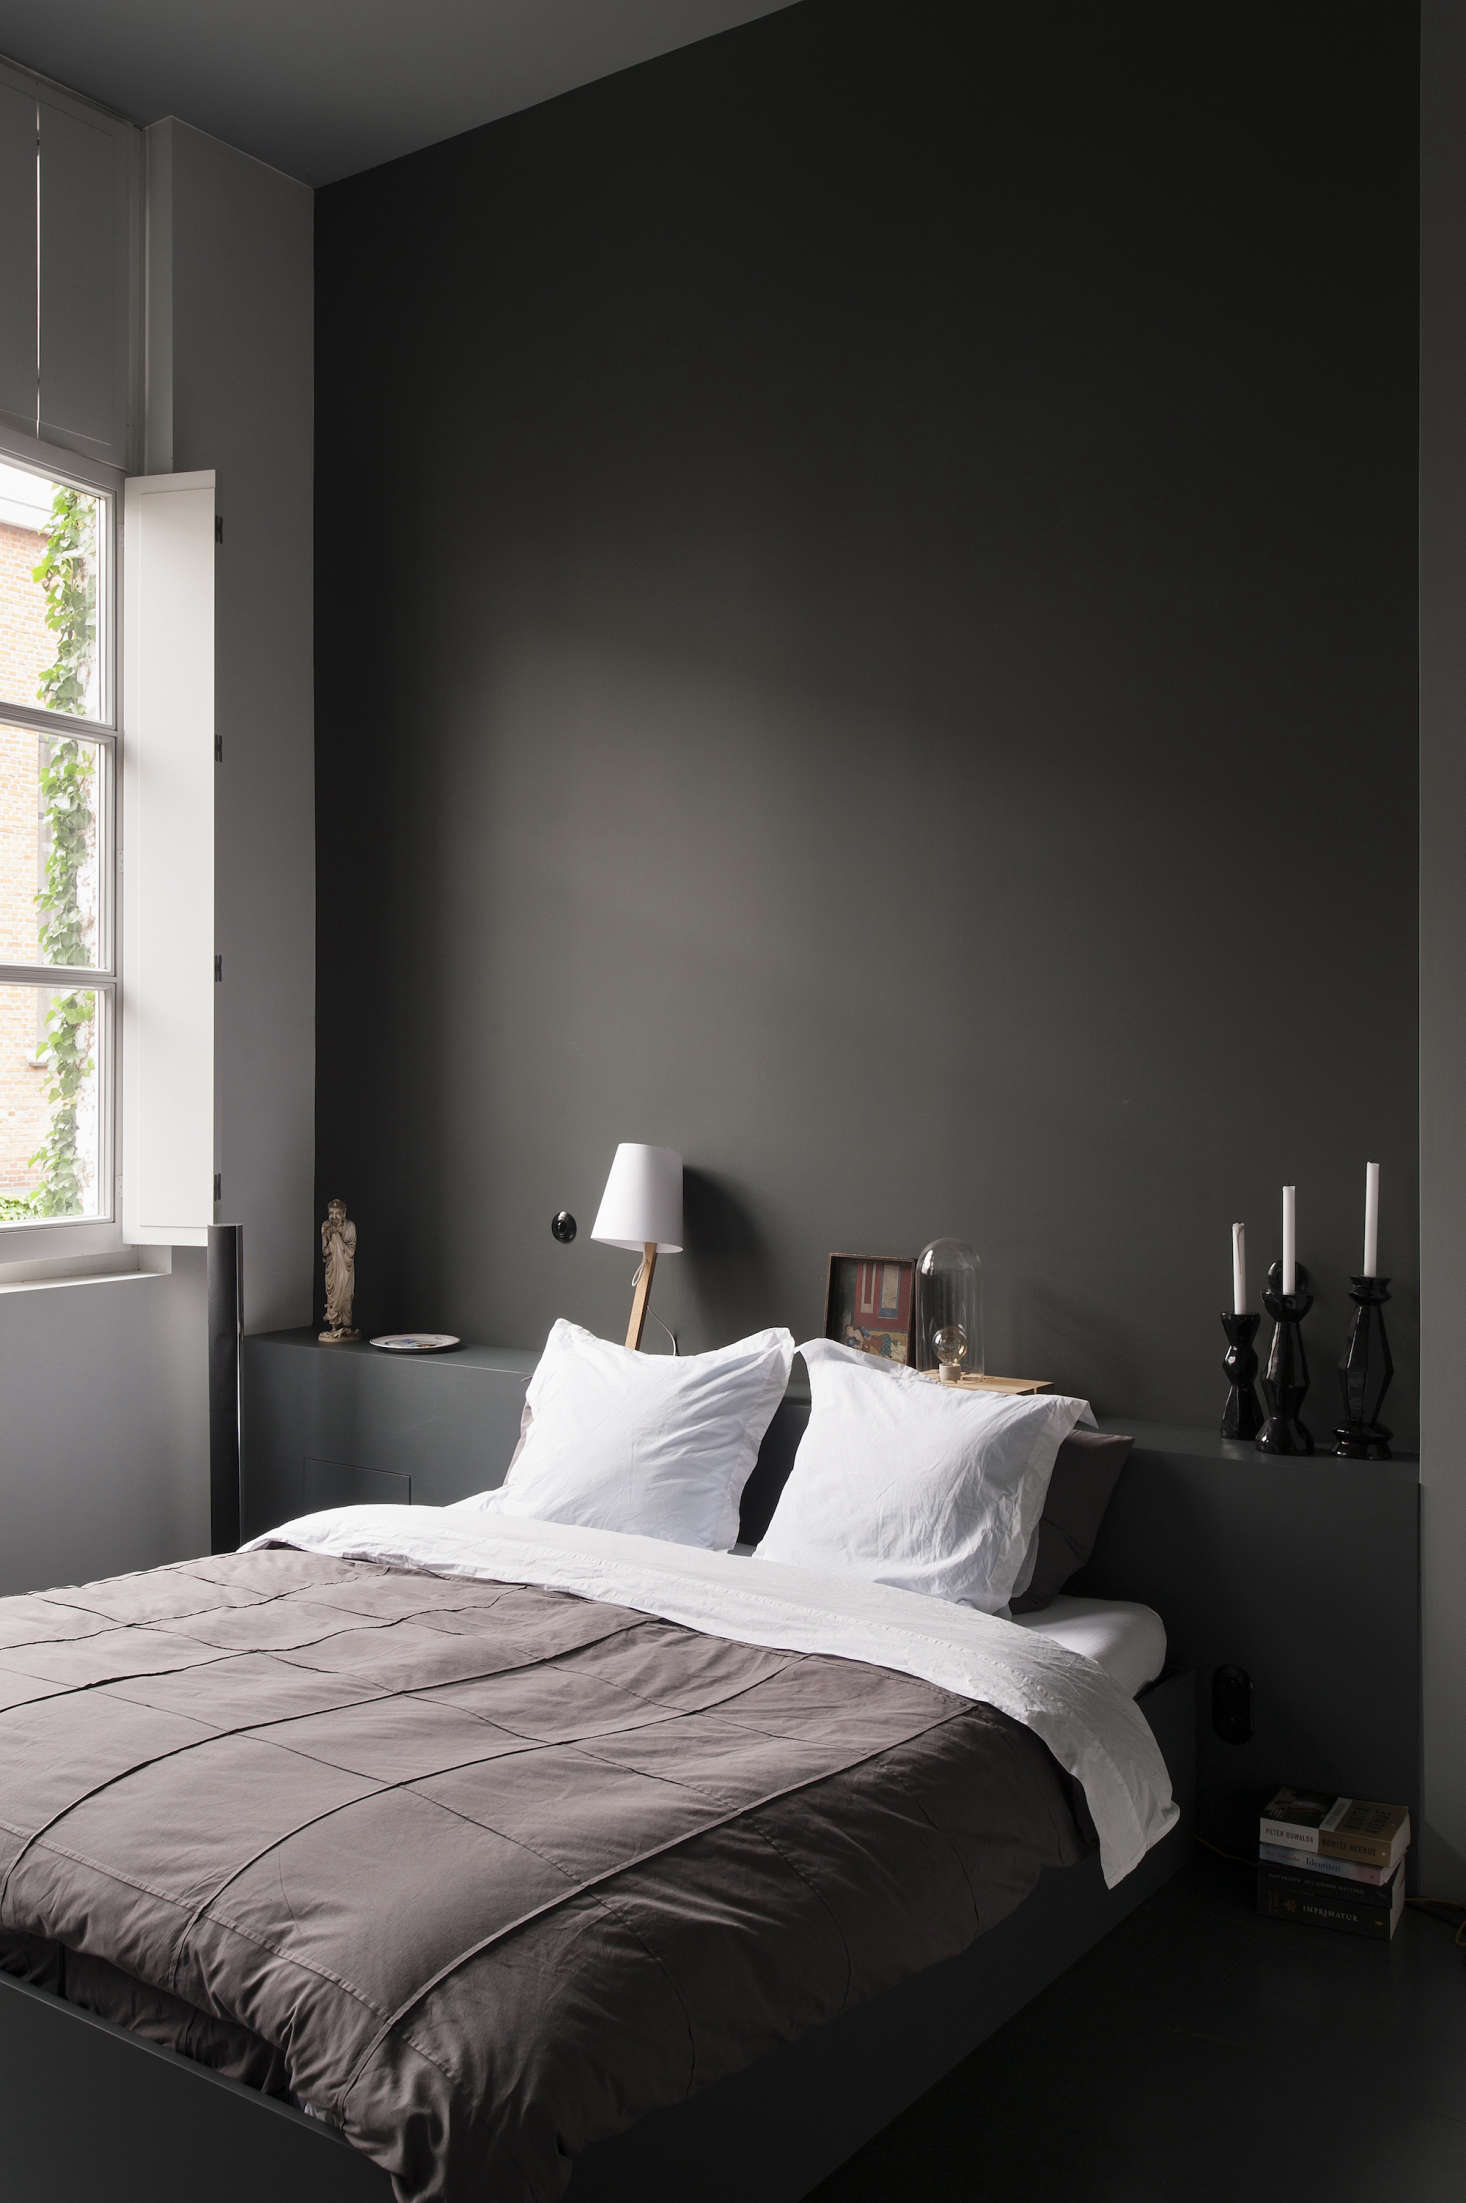 The bedroom with a darker palette than the rest of the bright white gallery-home space.